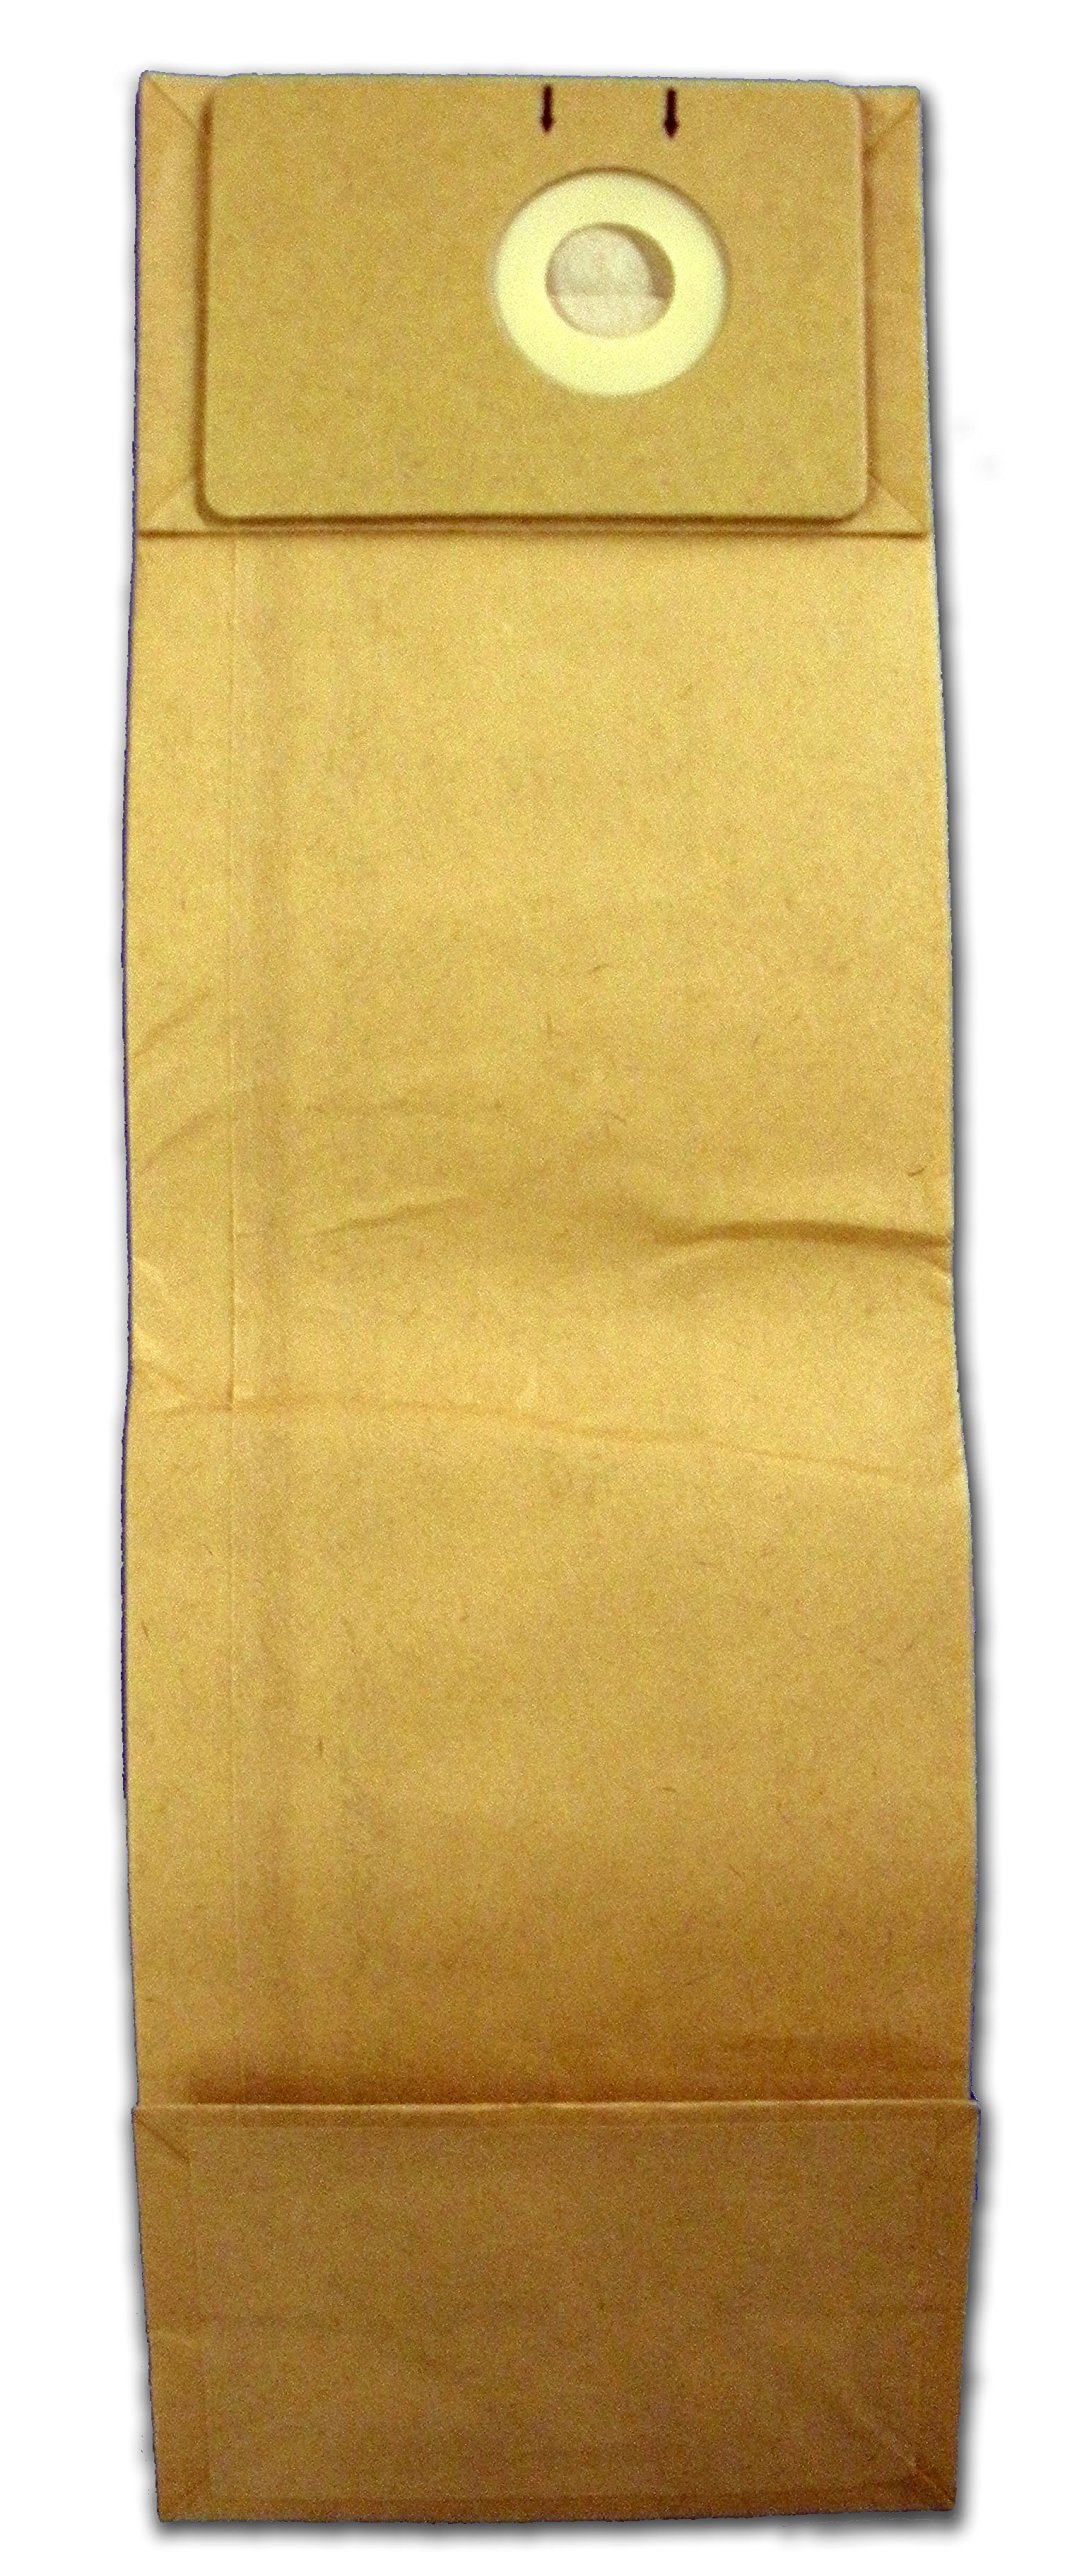 EnviroCare Replacement Vacuum Bags for Advance Spectrum, Clarke CarpetMaster, Nilfisk Uprights 10 Pack with 2 Filters